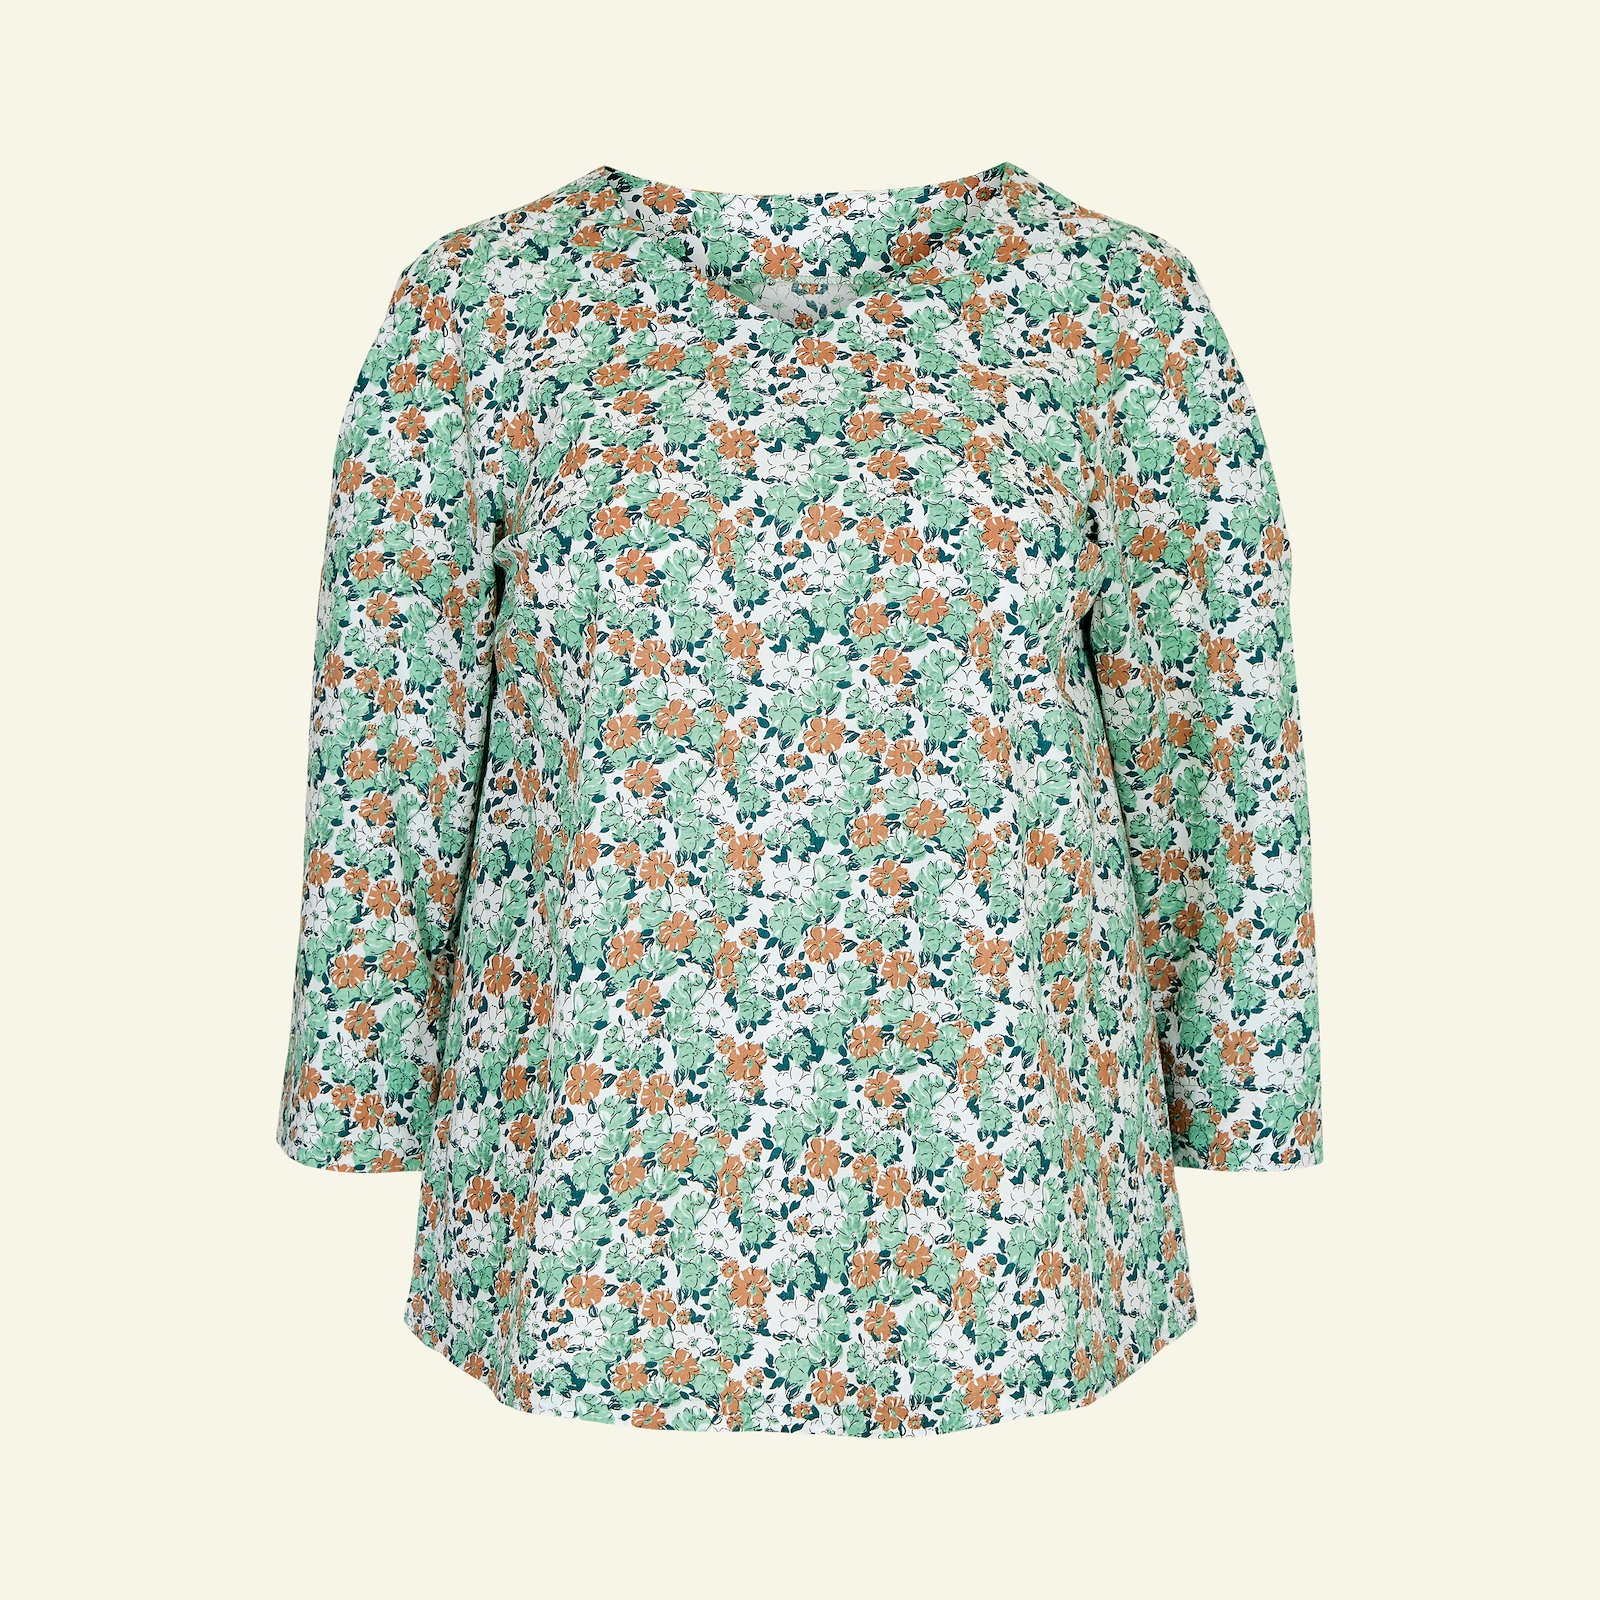 Blouse with long and short sleeve, 58/30 p72006_580078_sskit